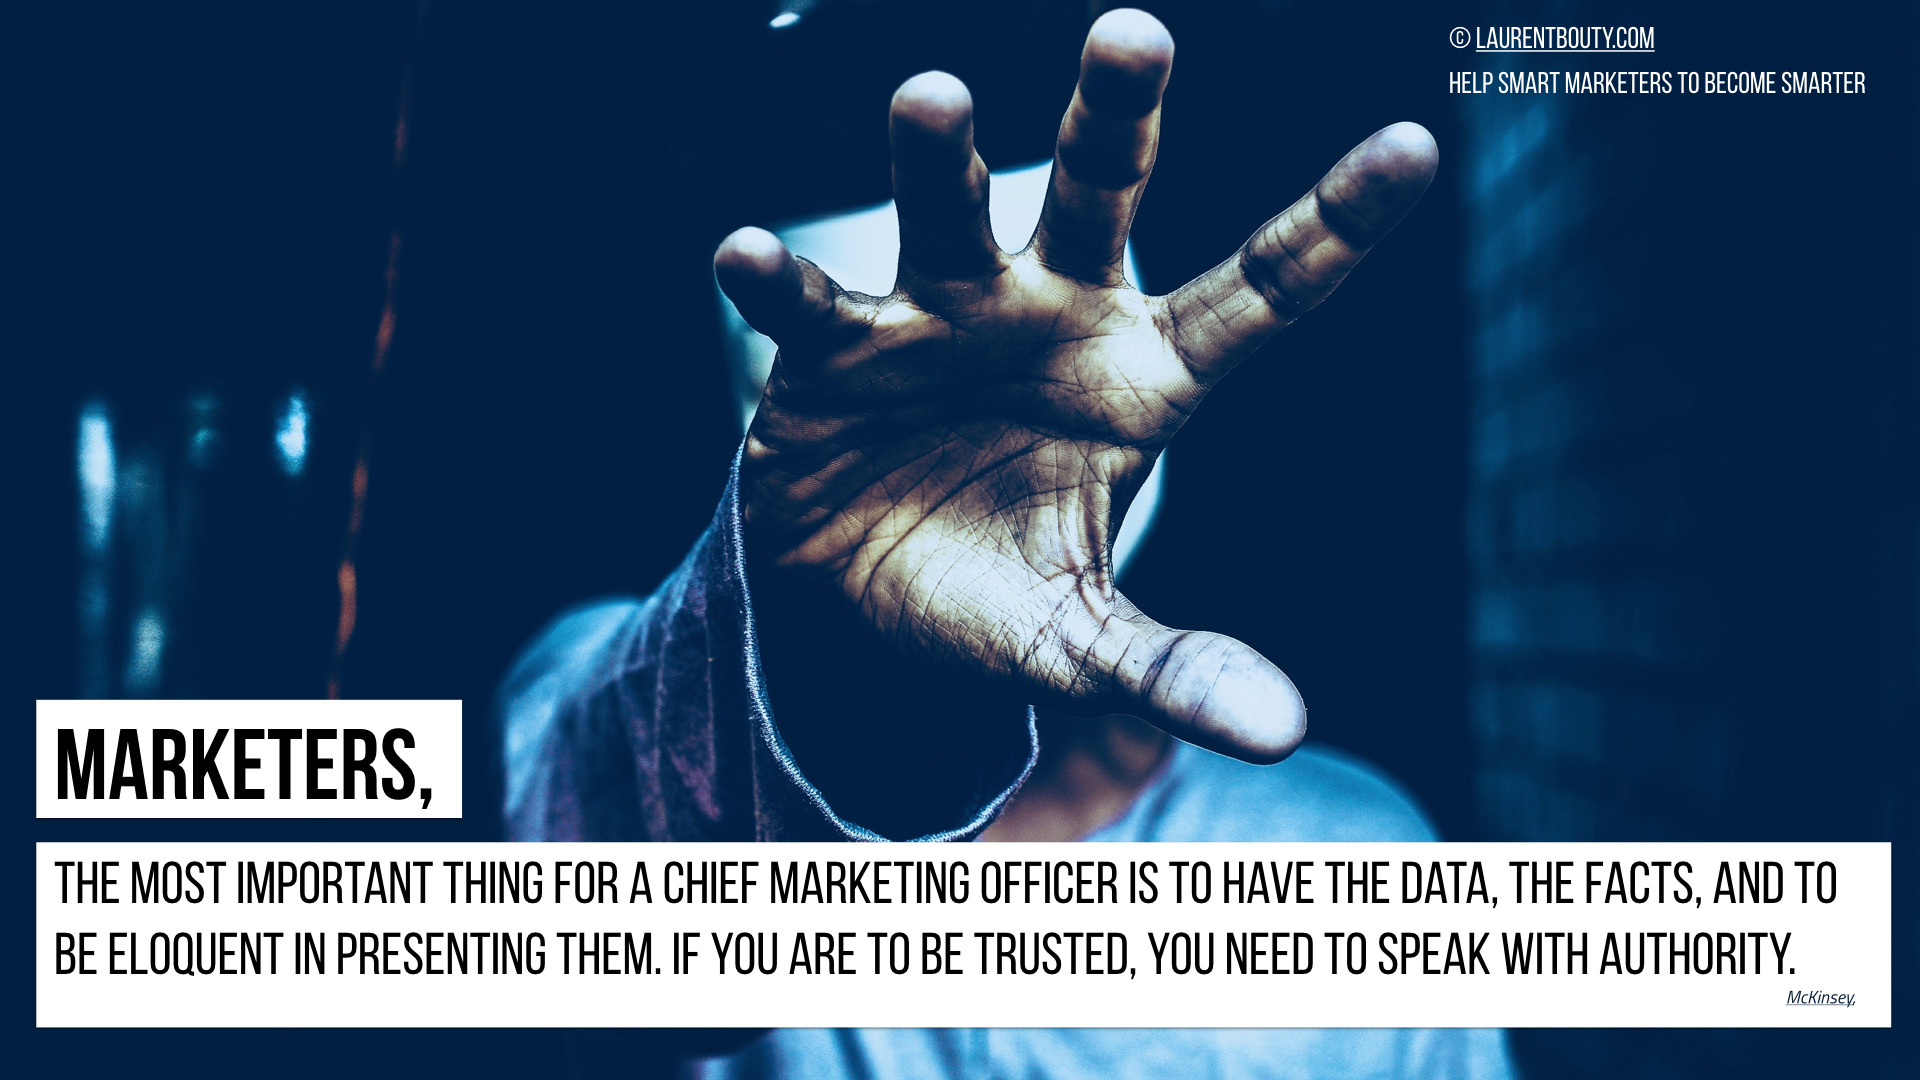 Marketers, the most important is to have the data, facts and to be eloquent